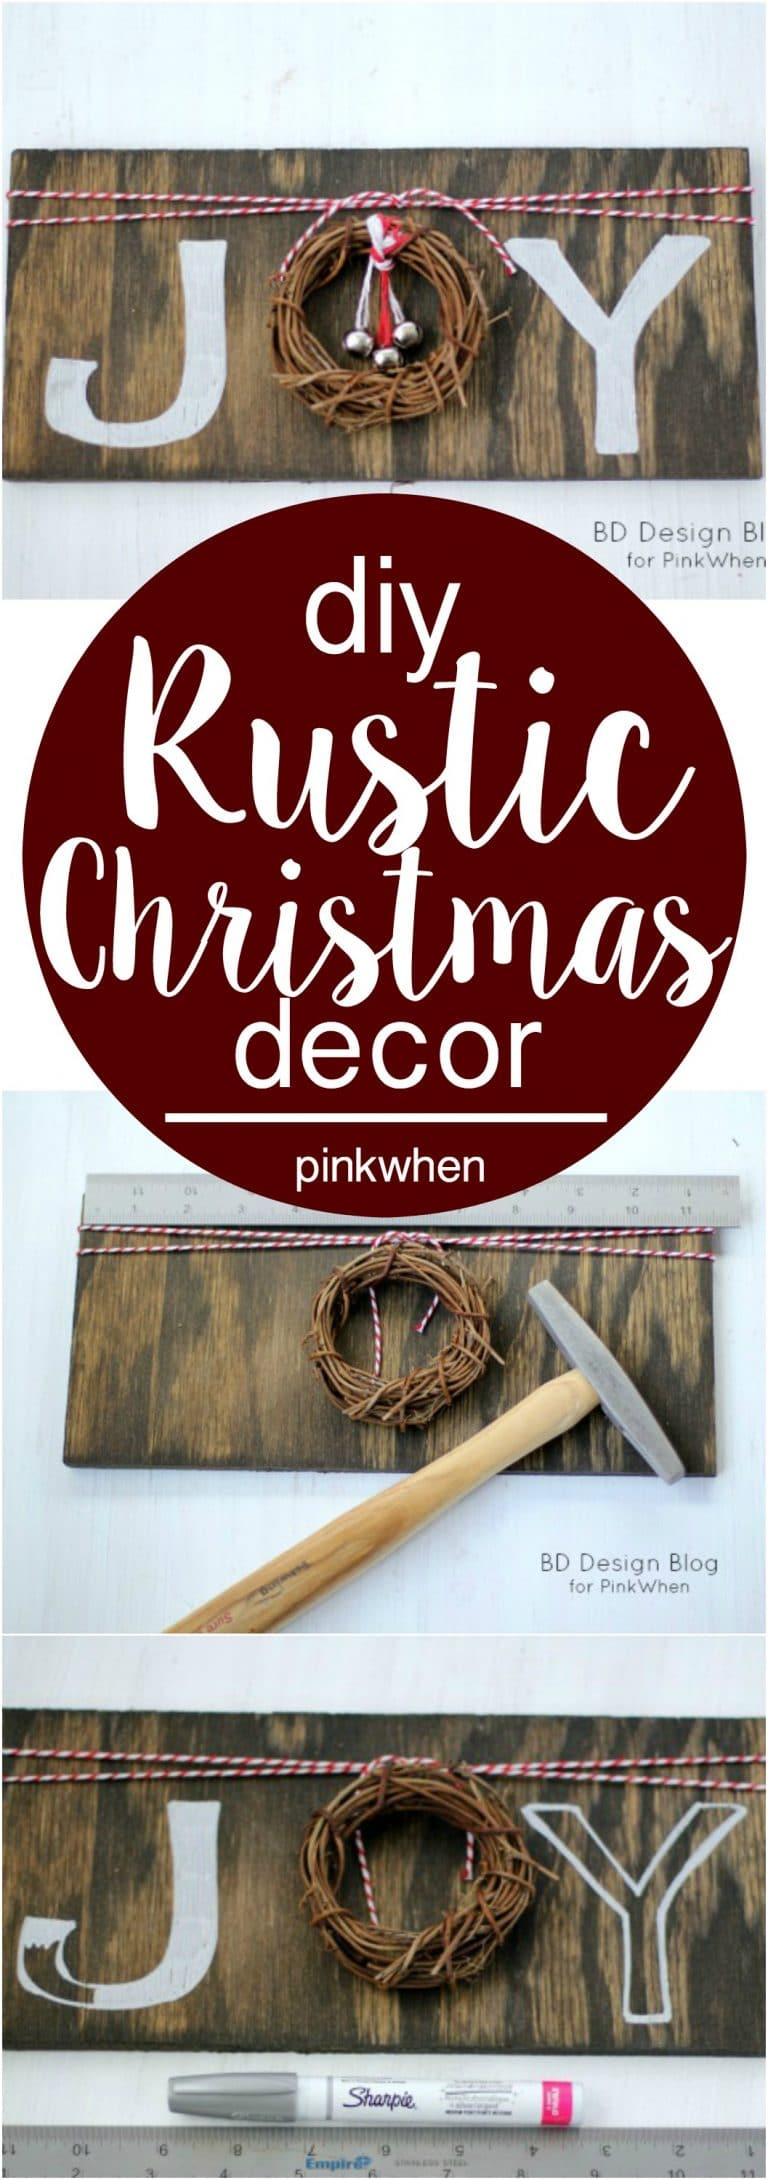 DIY Rustic Christmas Decor | JOY Sign | PinkWhen